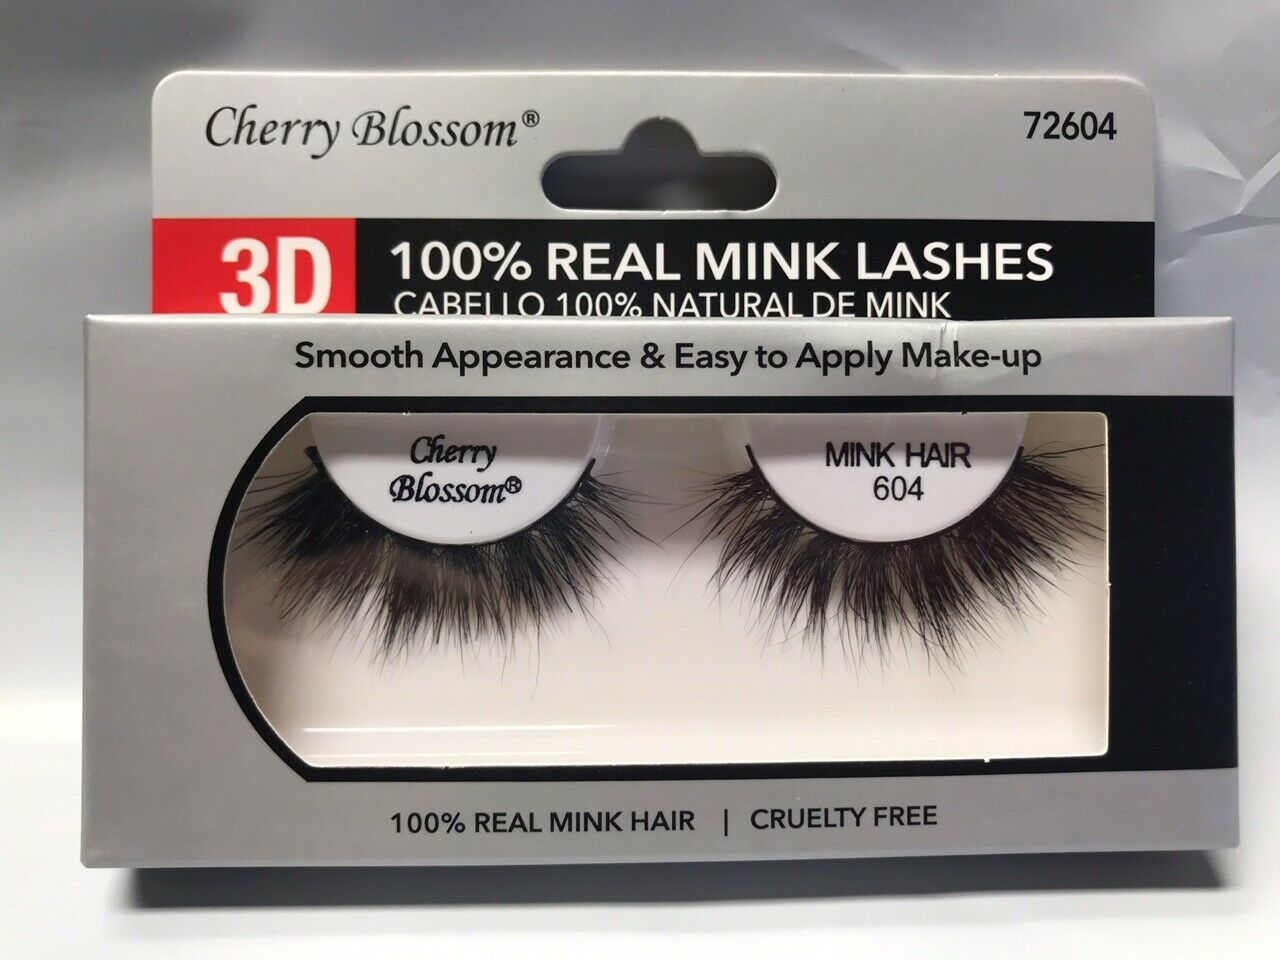 Primary image for CHERRY BLOSSOM 3D 100% REAL MINK LASHES #72604 CRUELTY FREE VERY LIGHT REUSABLE